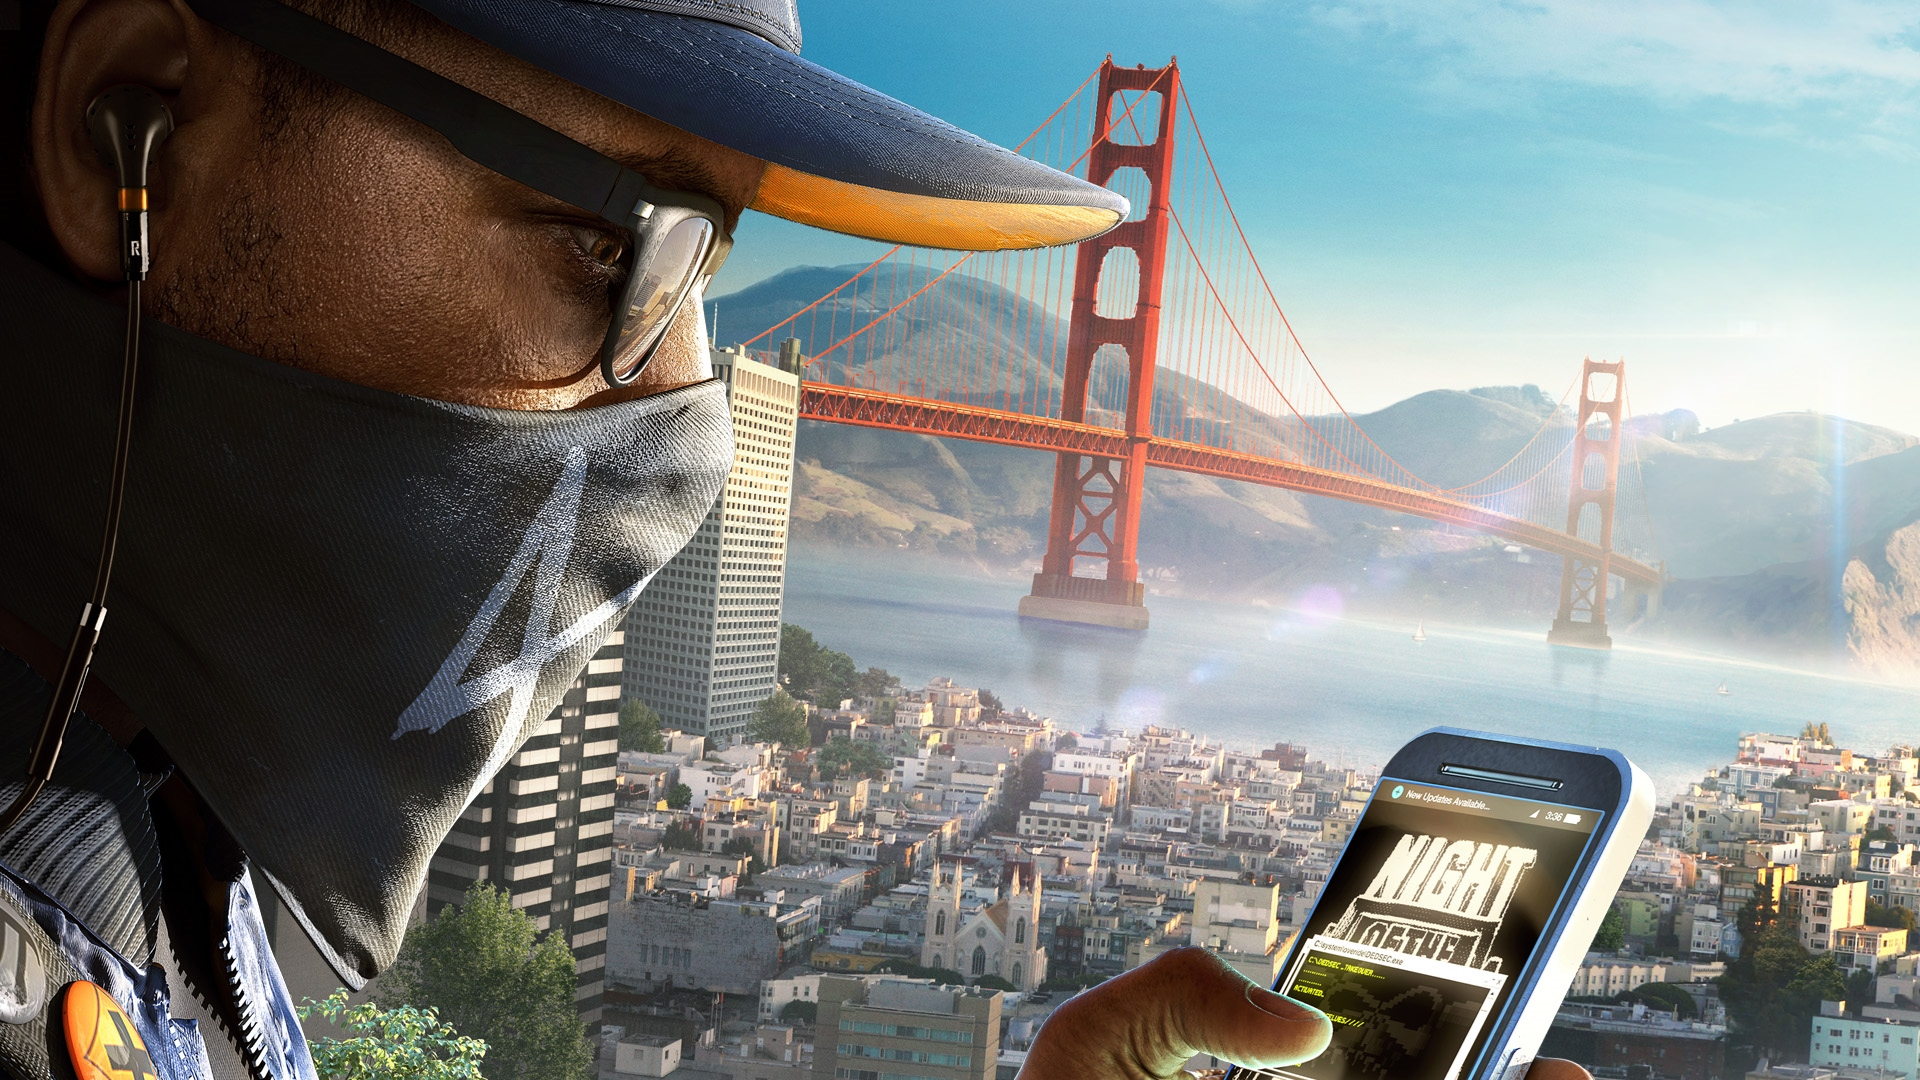 Watch Dogs 2 PC graphic settings revealed | Feed4gamers